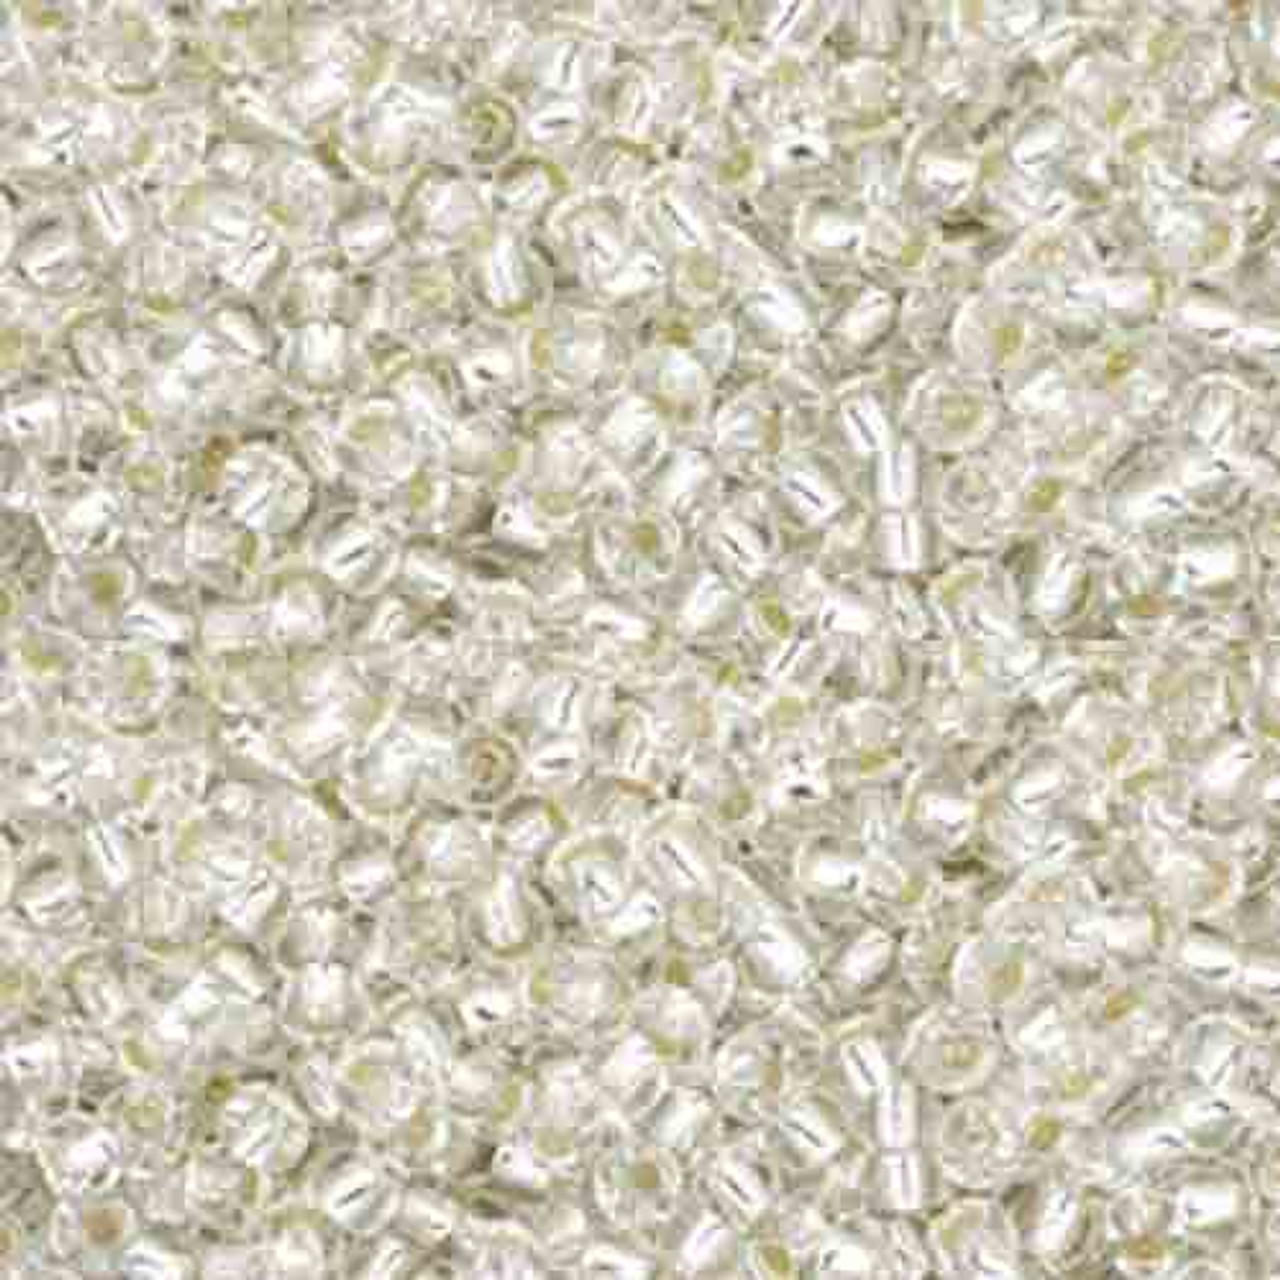 8//0 Silver Lined Crystal TOHO Round Glass Seed Beads 15 grams #21